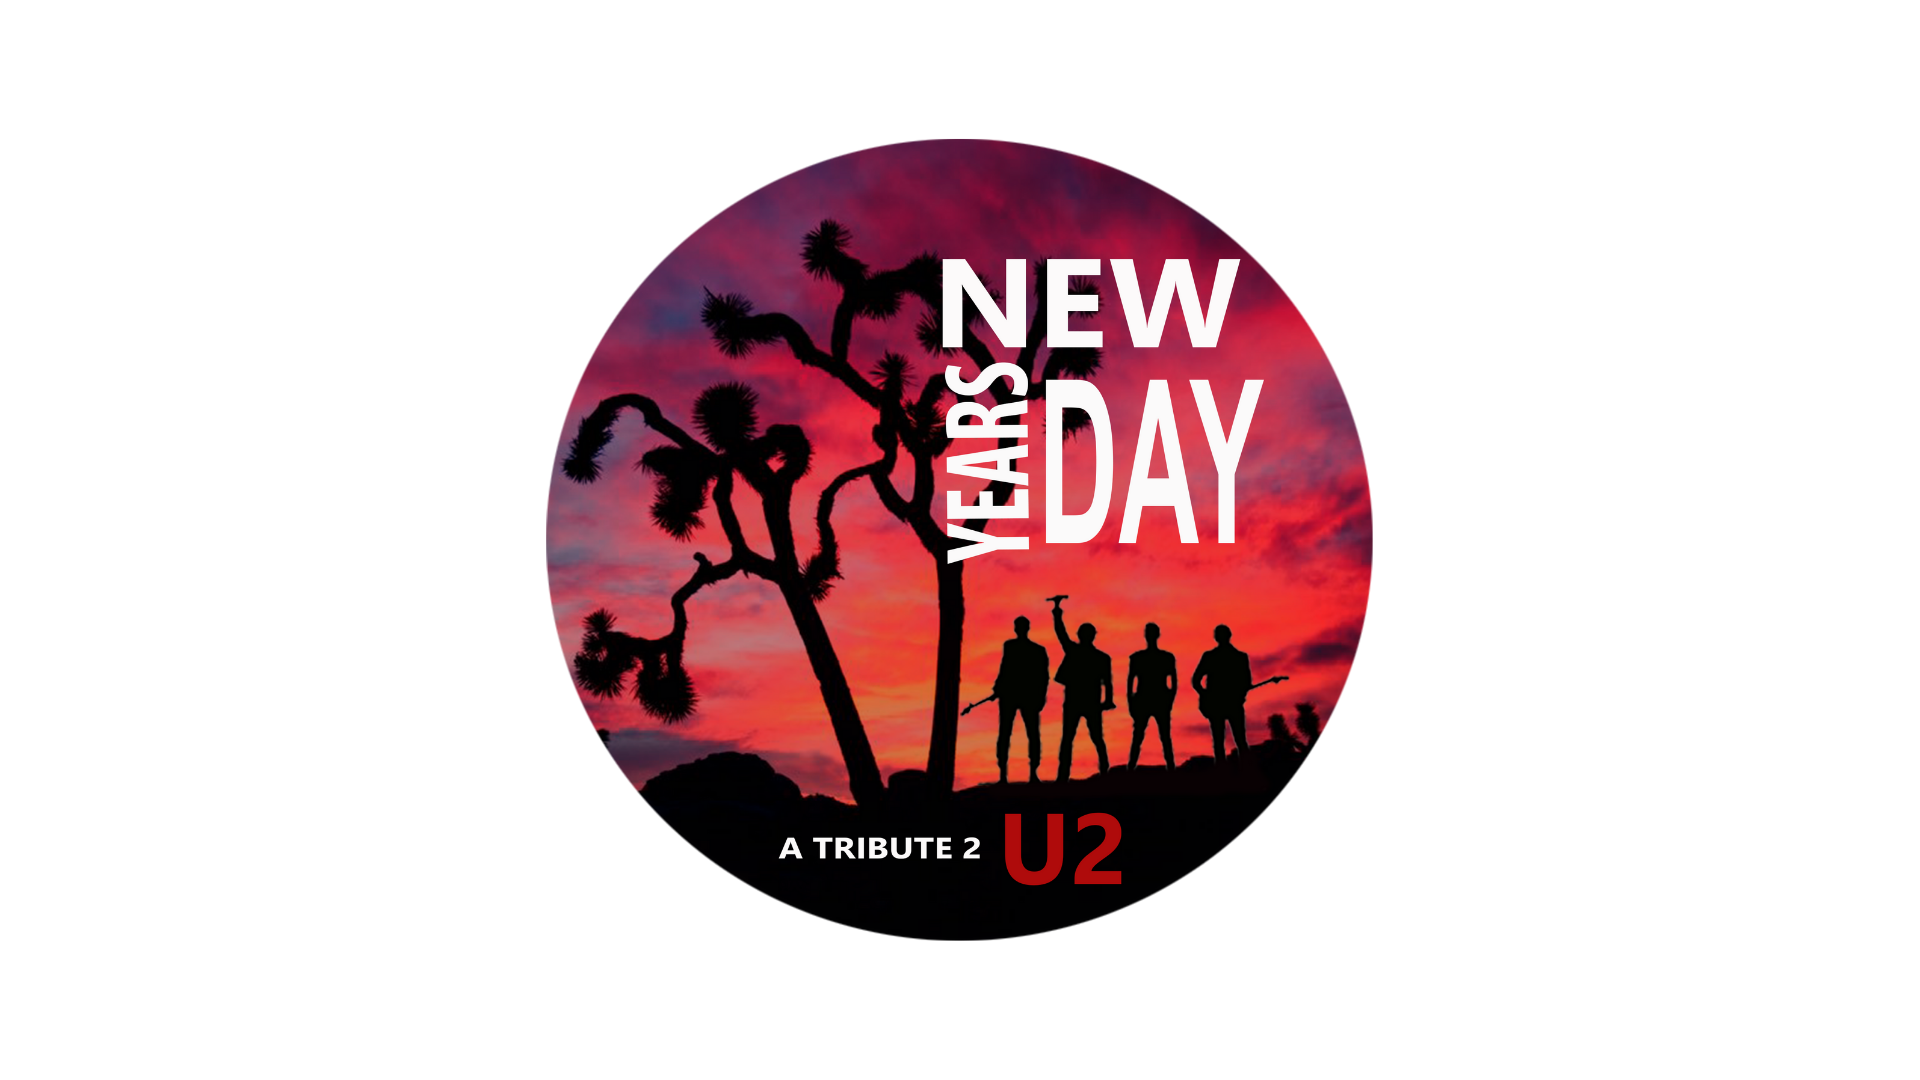 Promo image of U2 Tribute: New Years Day